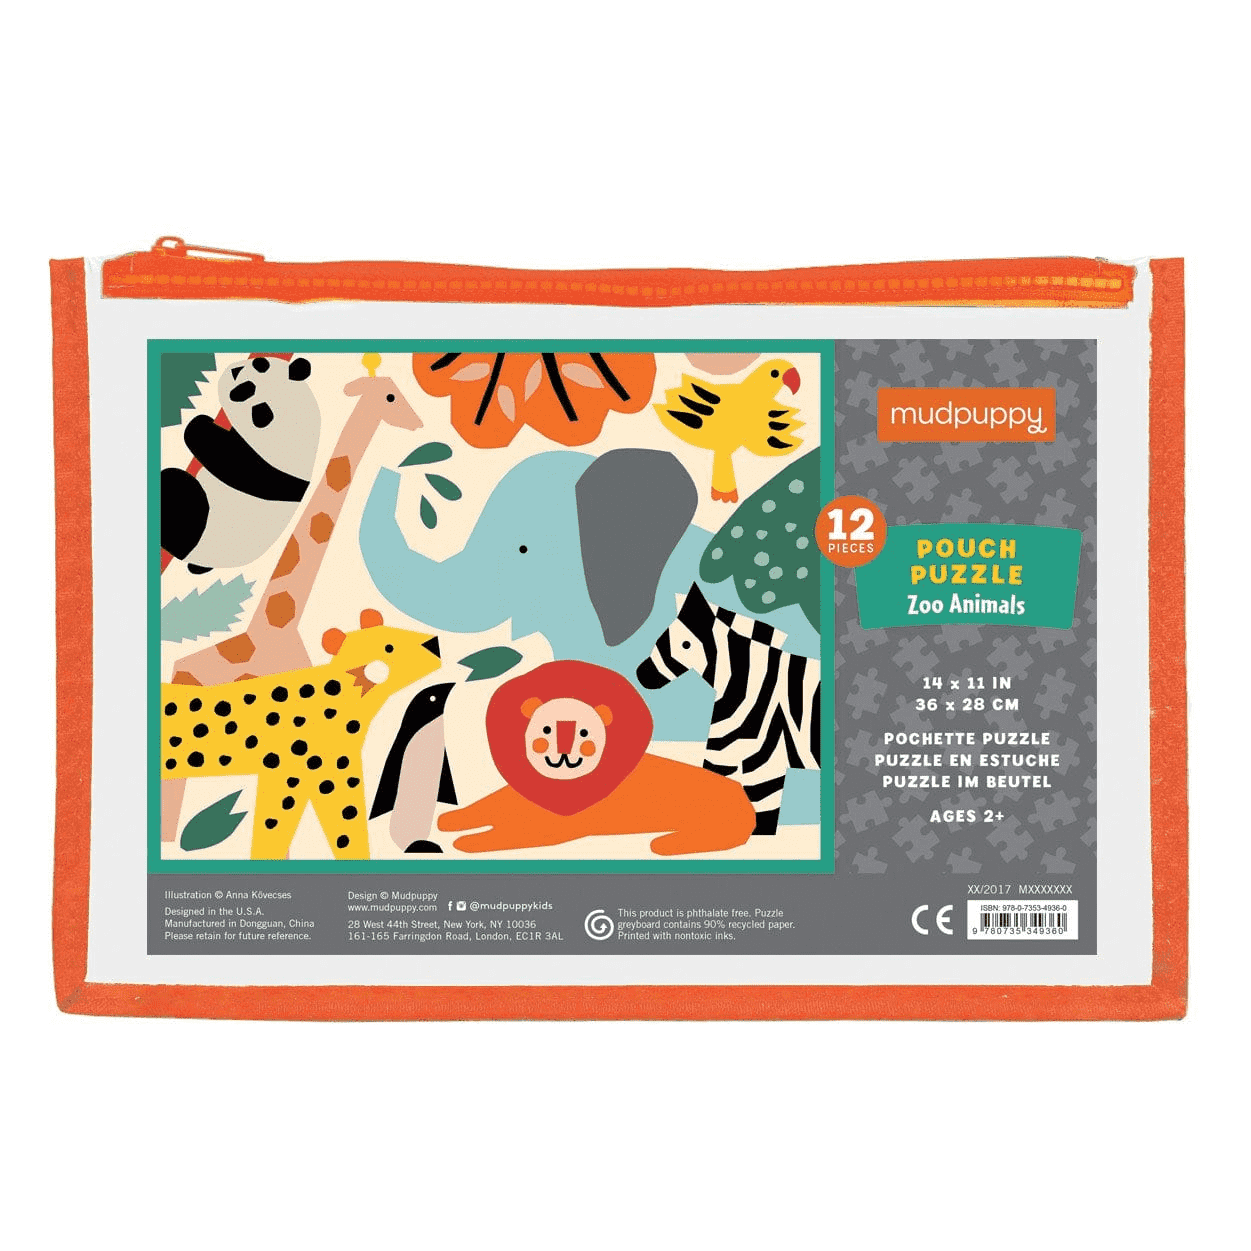 Zoo Animals Pouch Puzzle Pouch Puzzles Mudpuppy